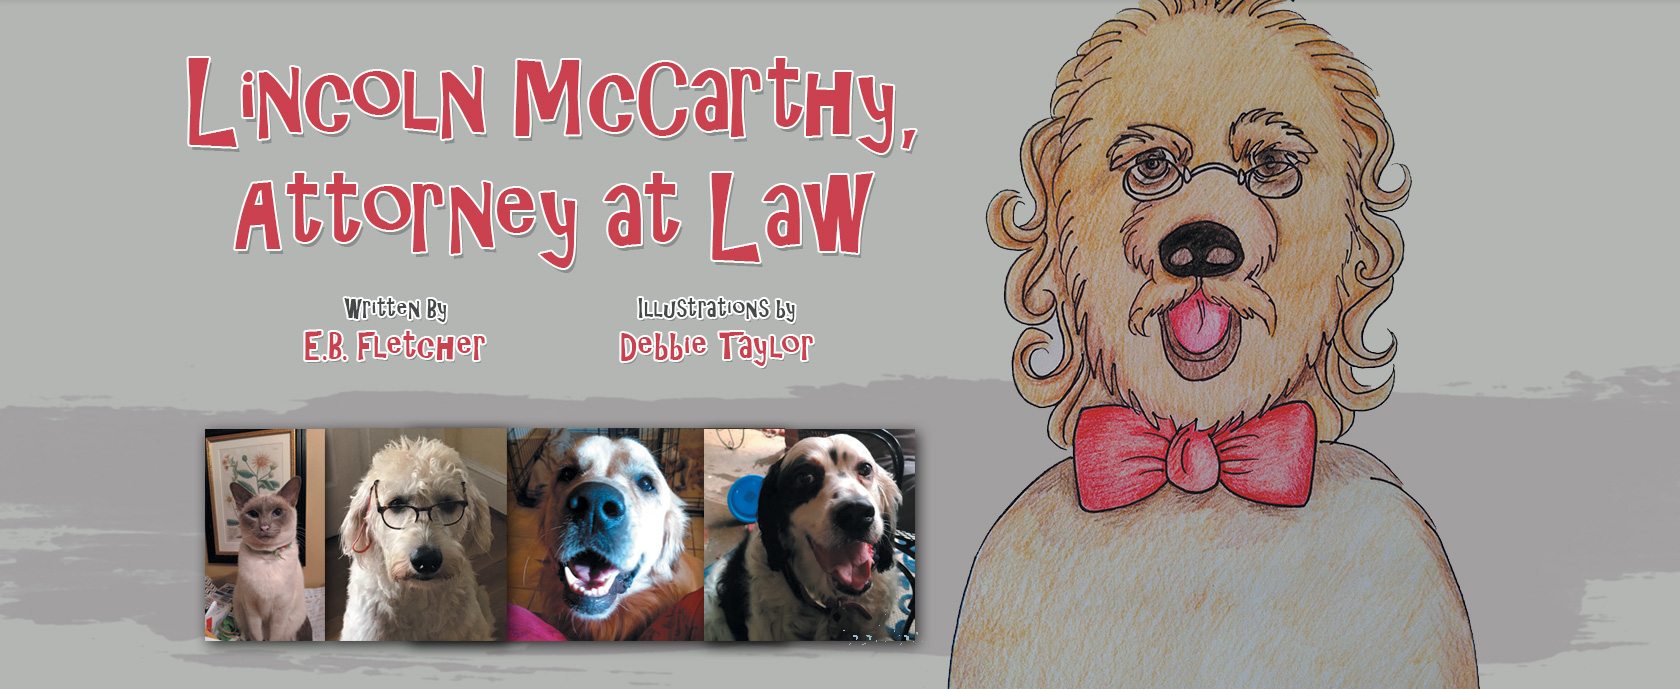 Lincoln McCarthy, Attorney at Law